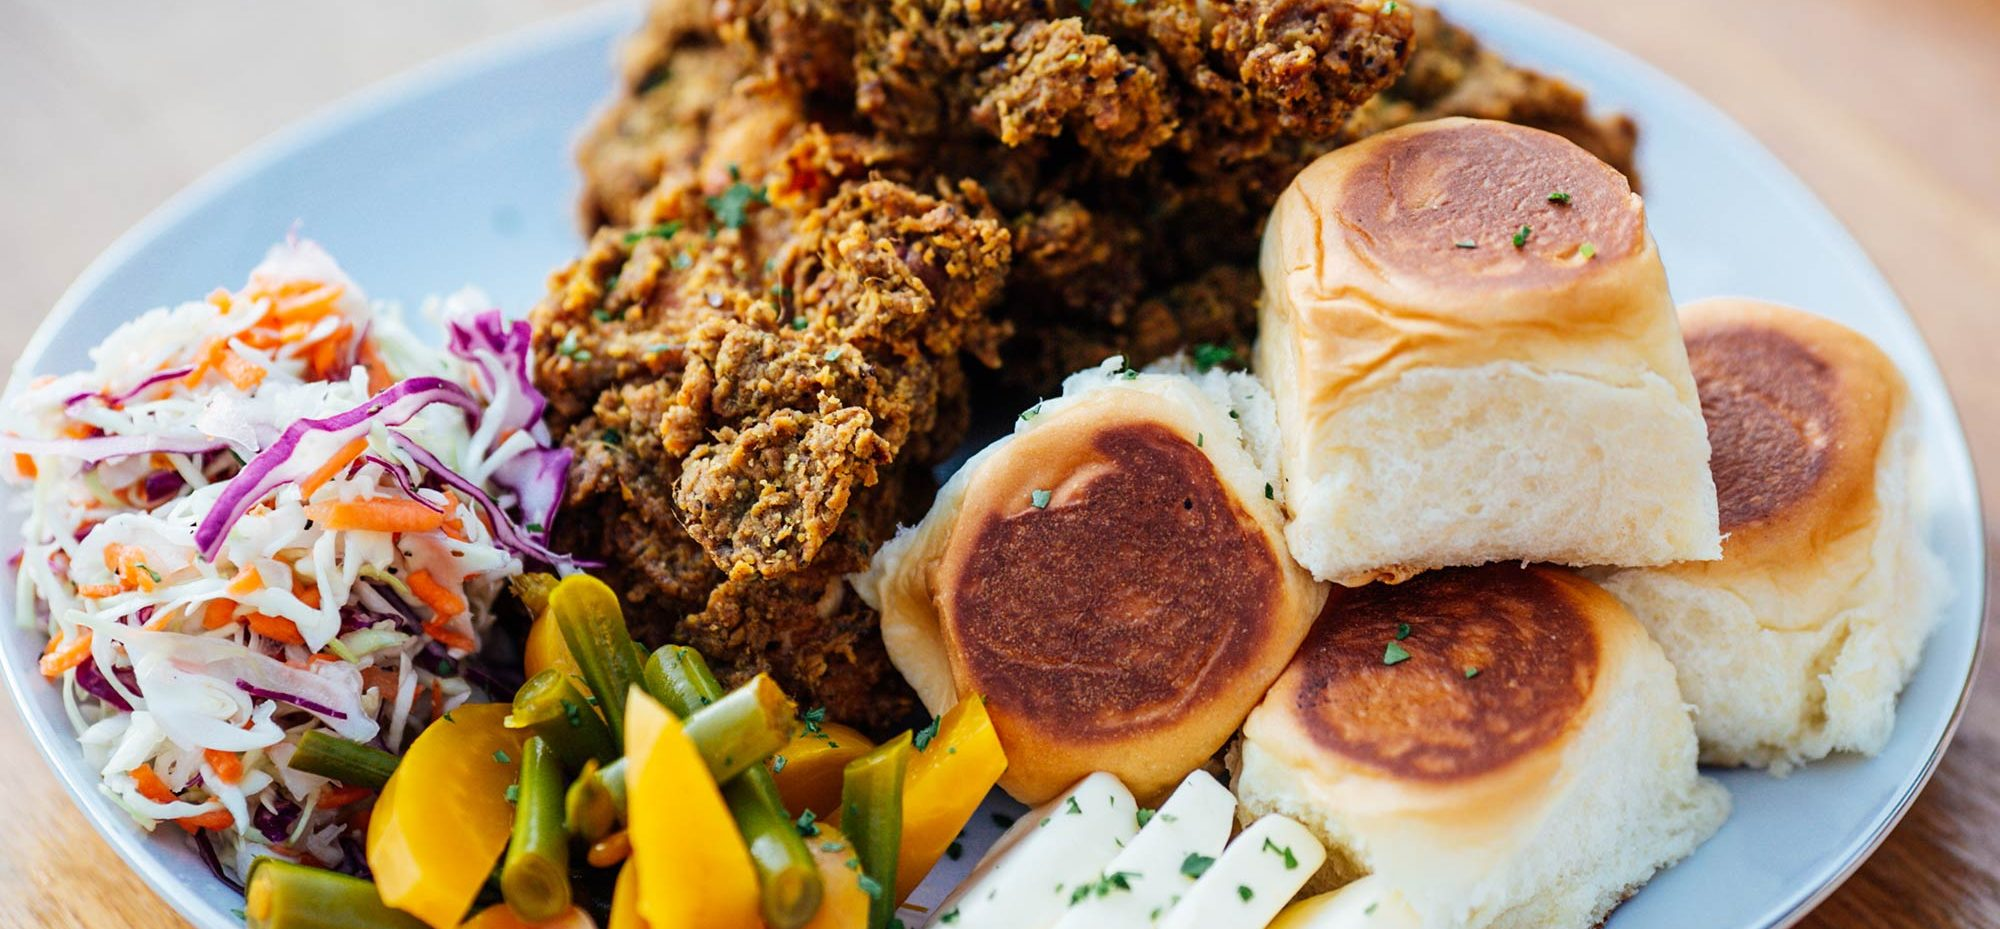 Fried chicken and buns on a plate